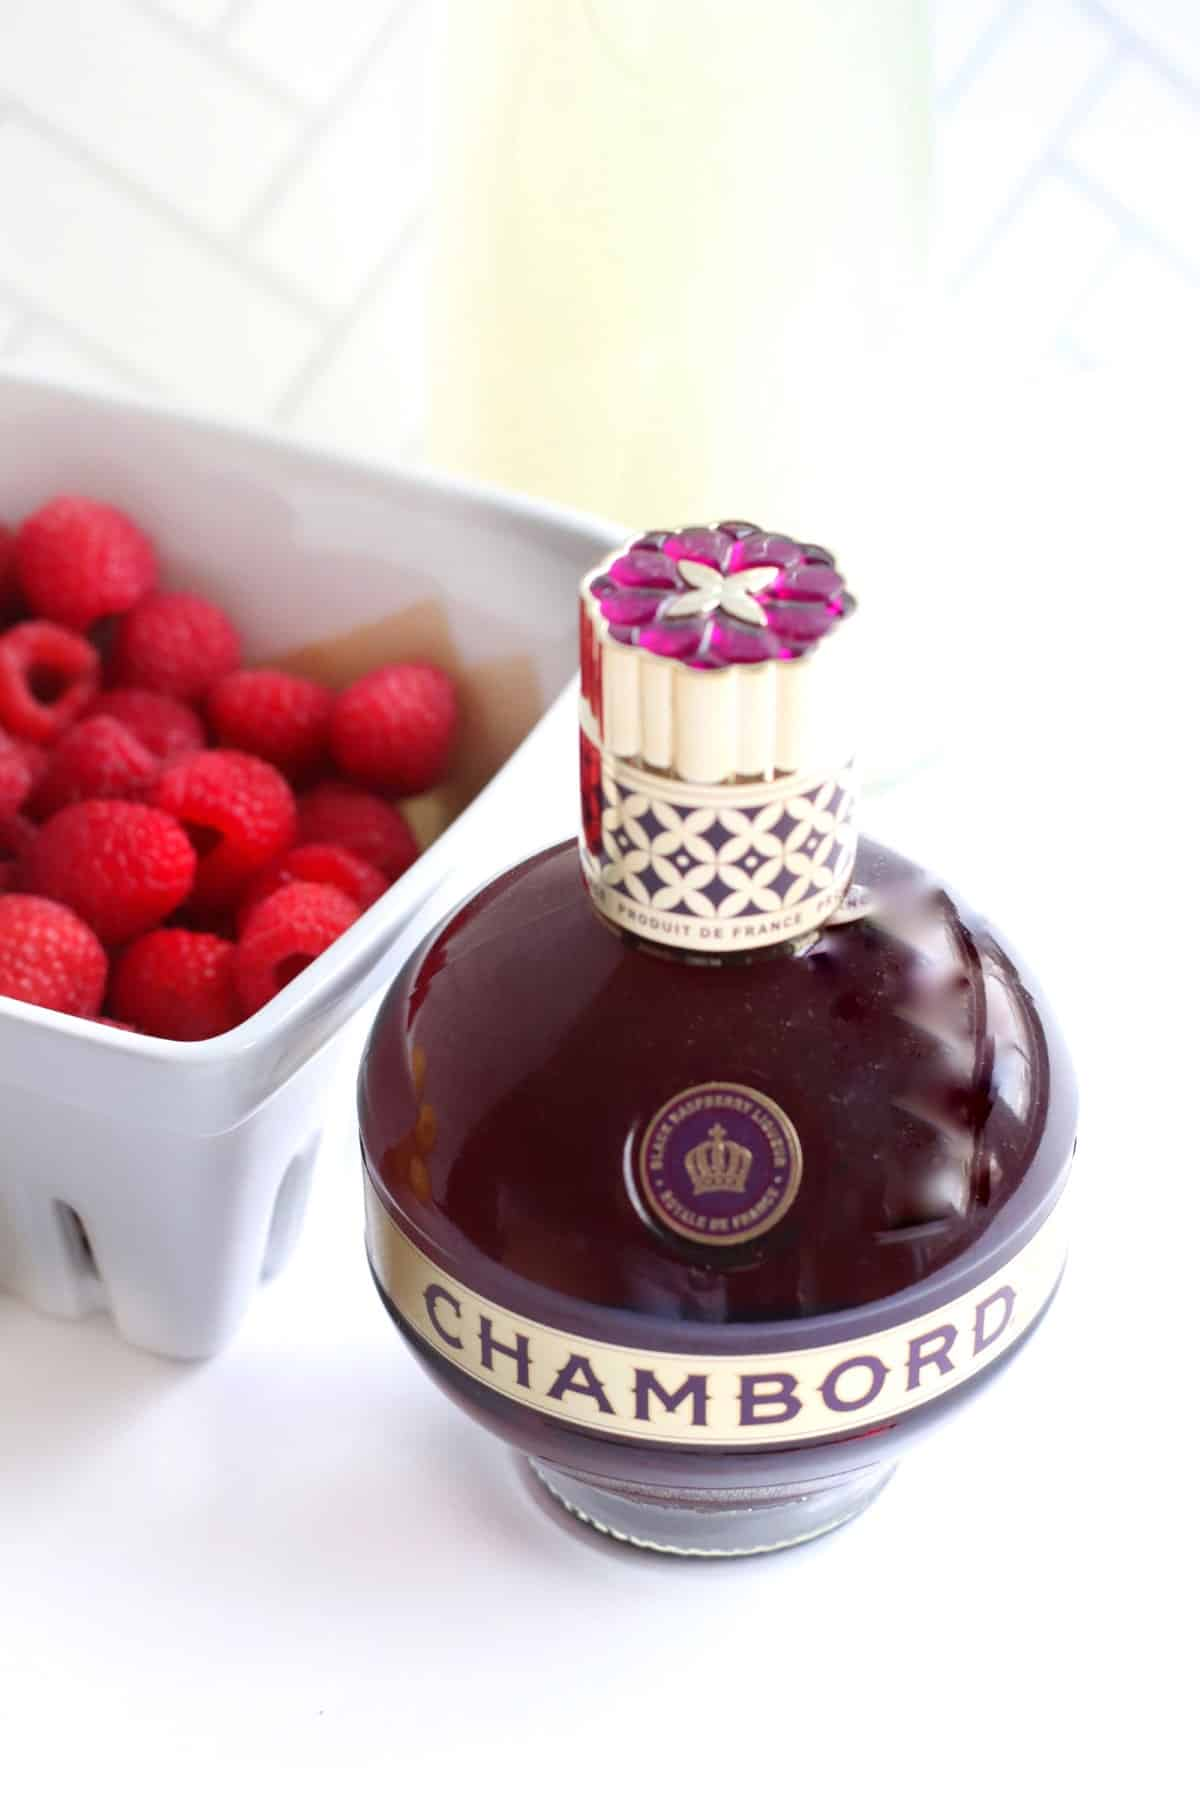 A bottle of Chambord with raspberries